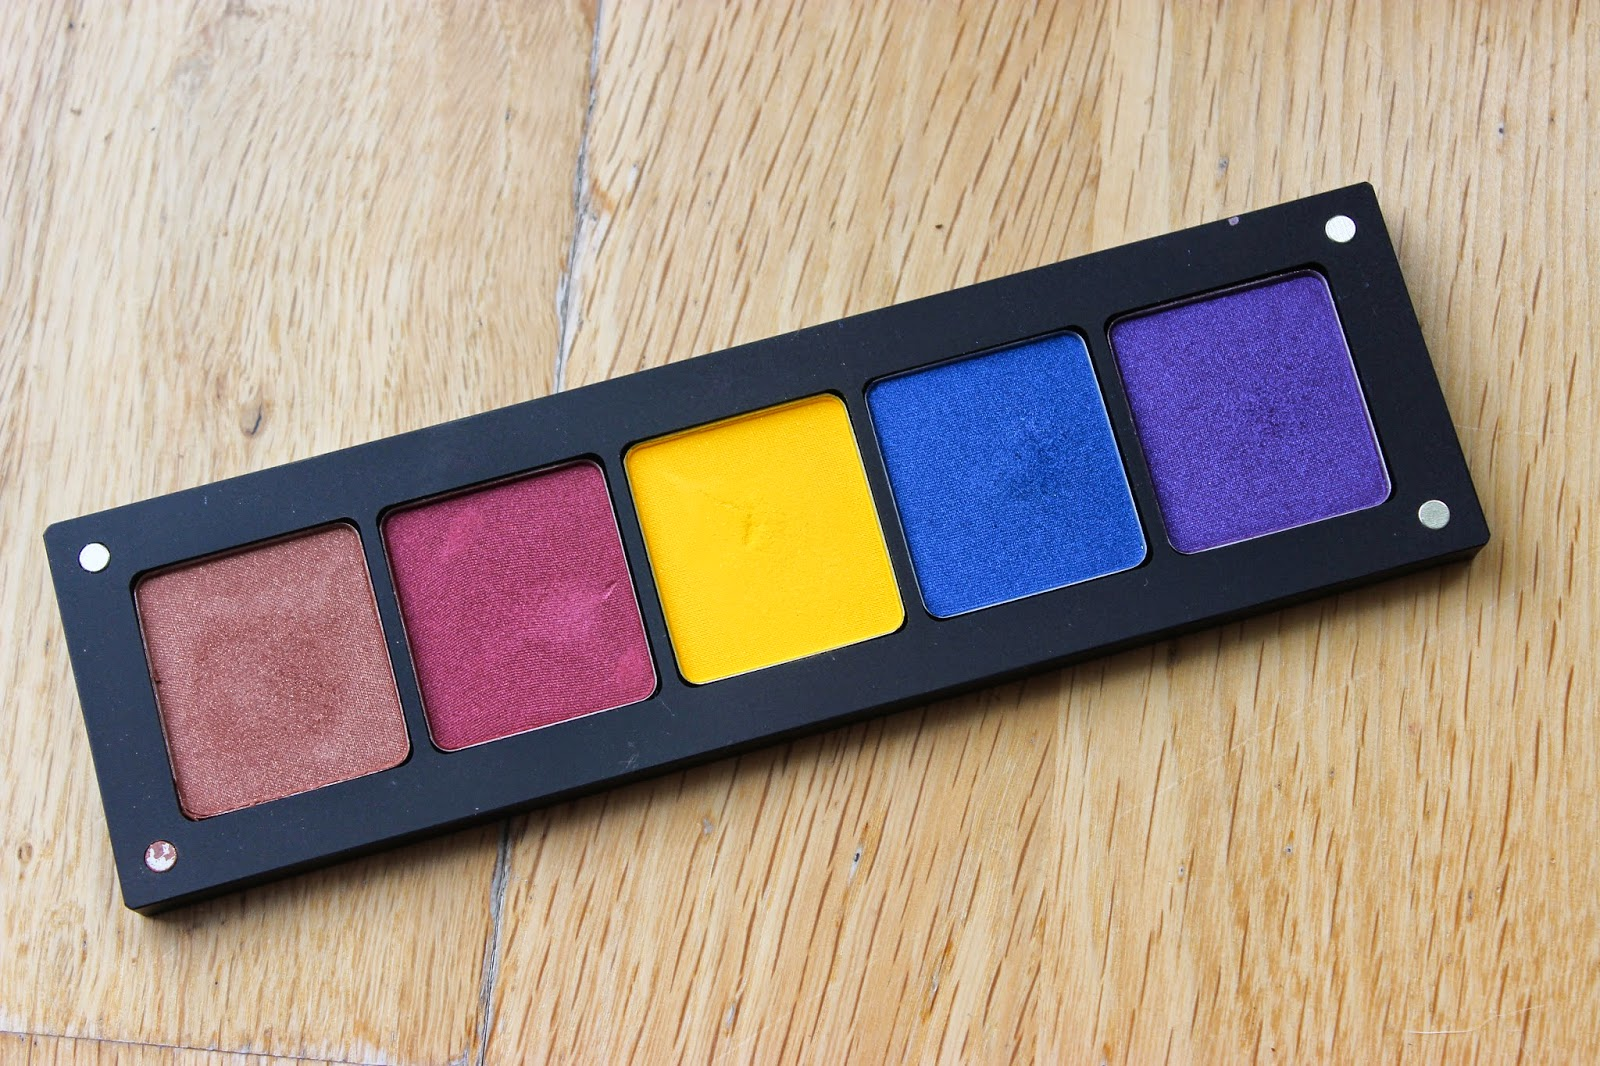 Inglot Eyeshadow Swatches Freedom System Discoveries Of Self Blog NC50 UK Beauty Blogger